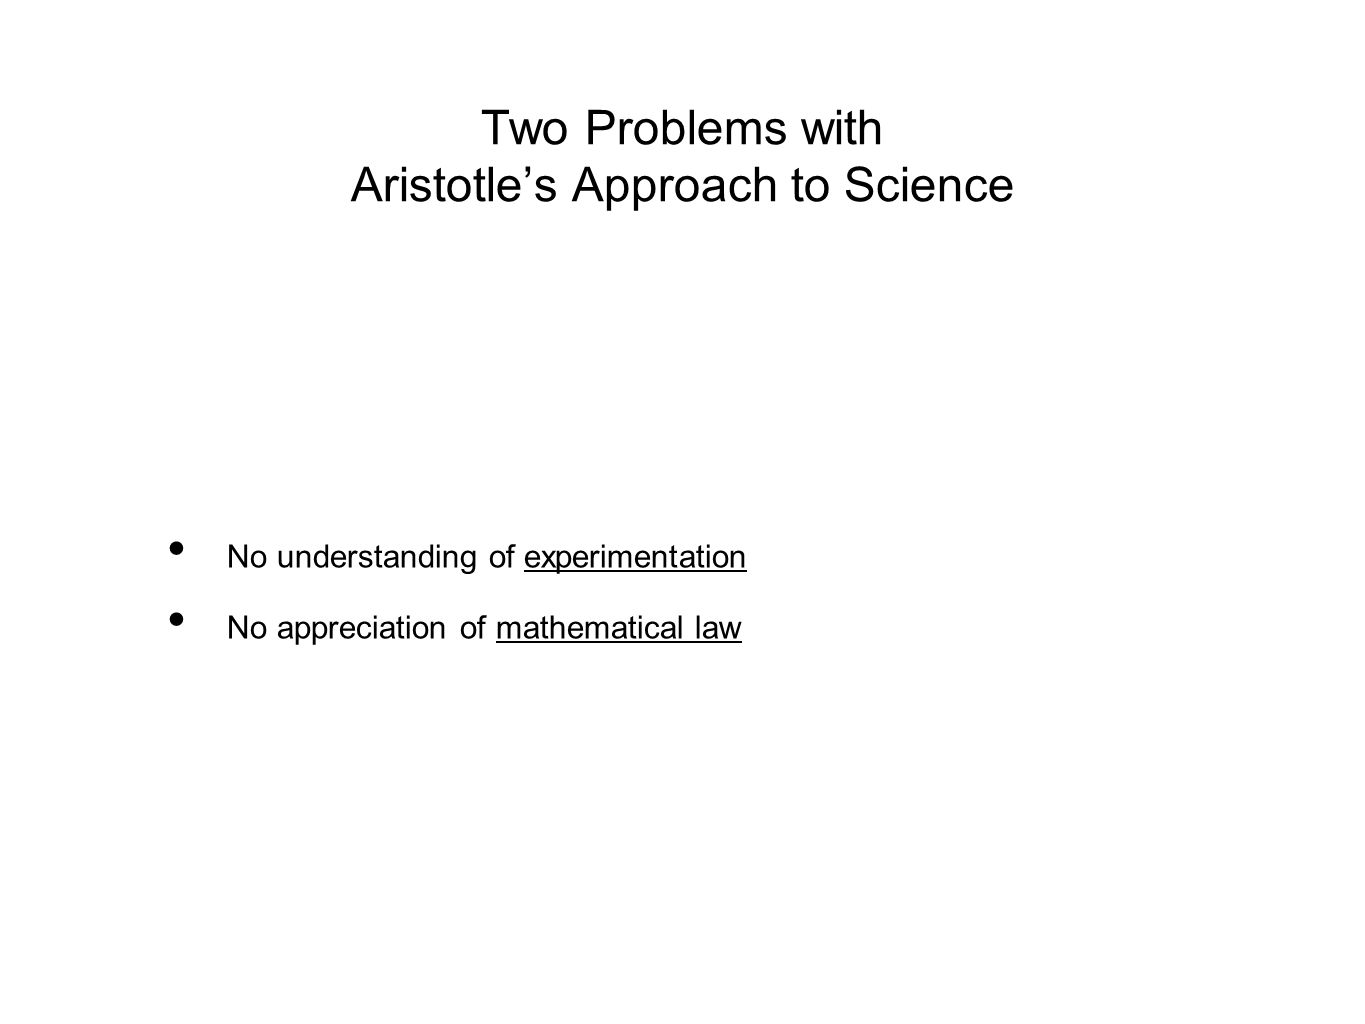 Two Problems with Aristotle's Approach to Science